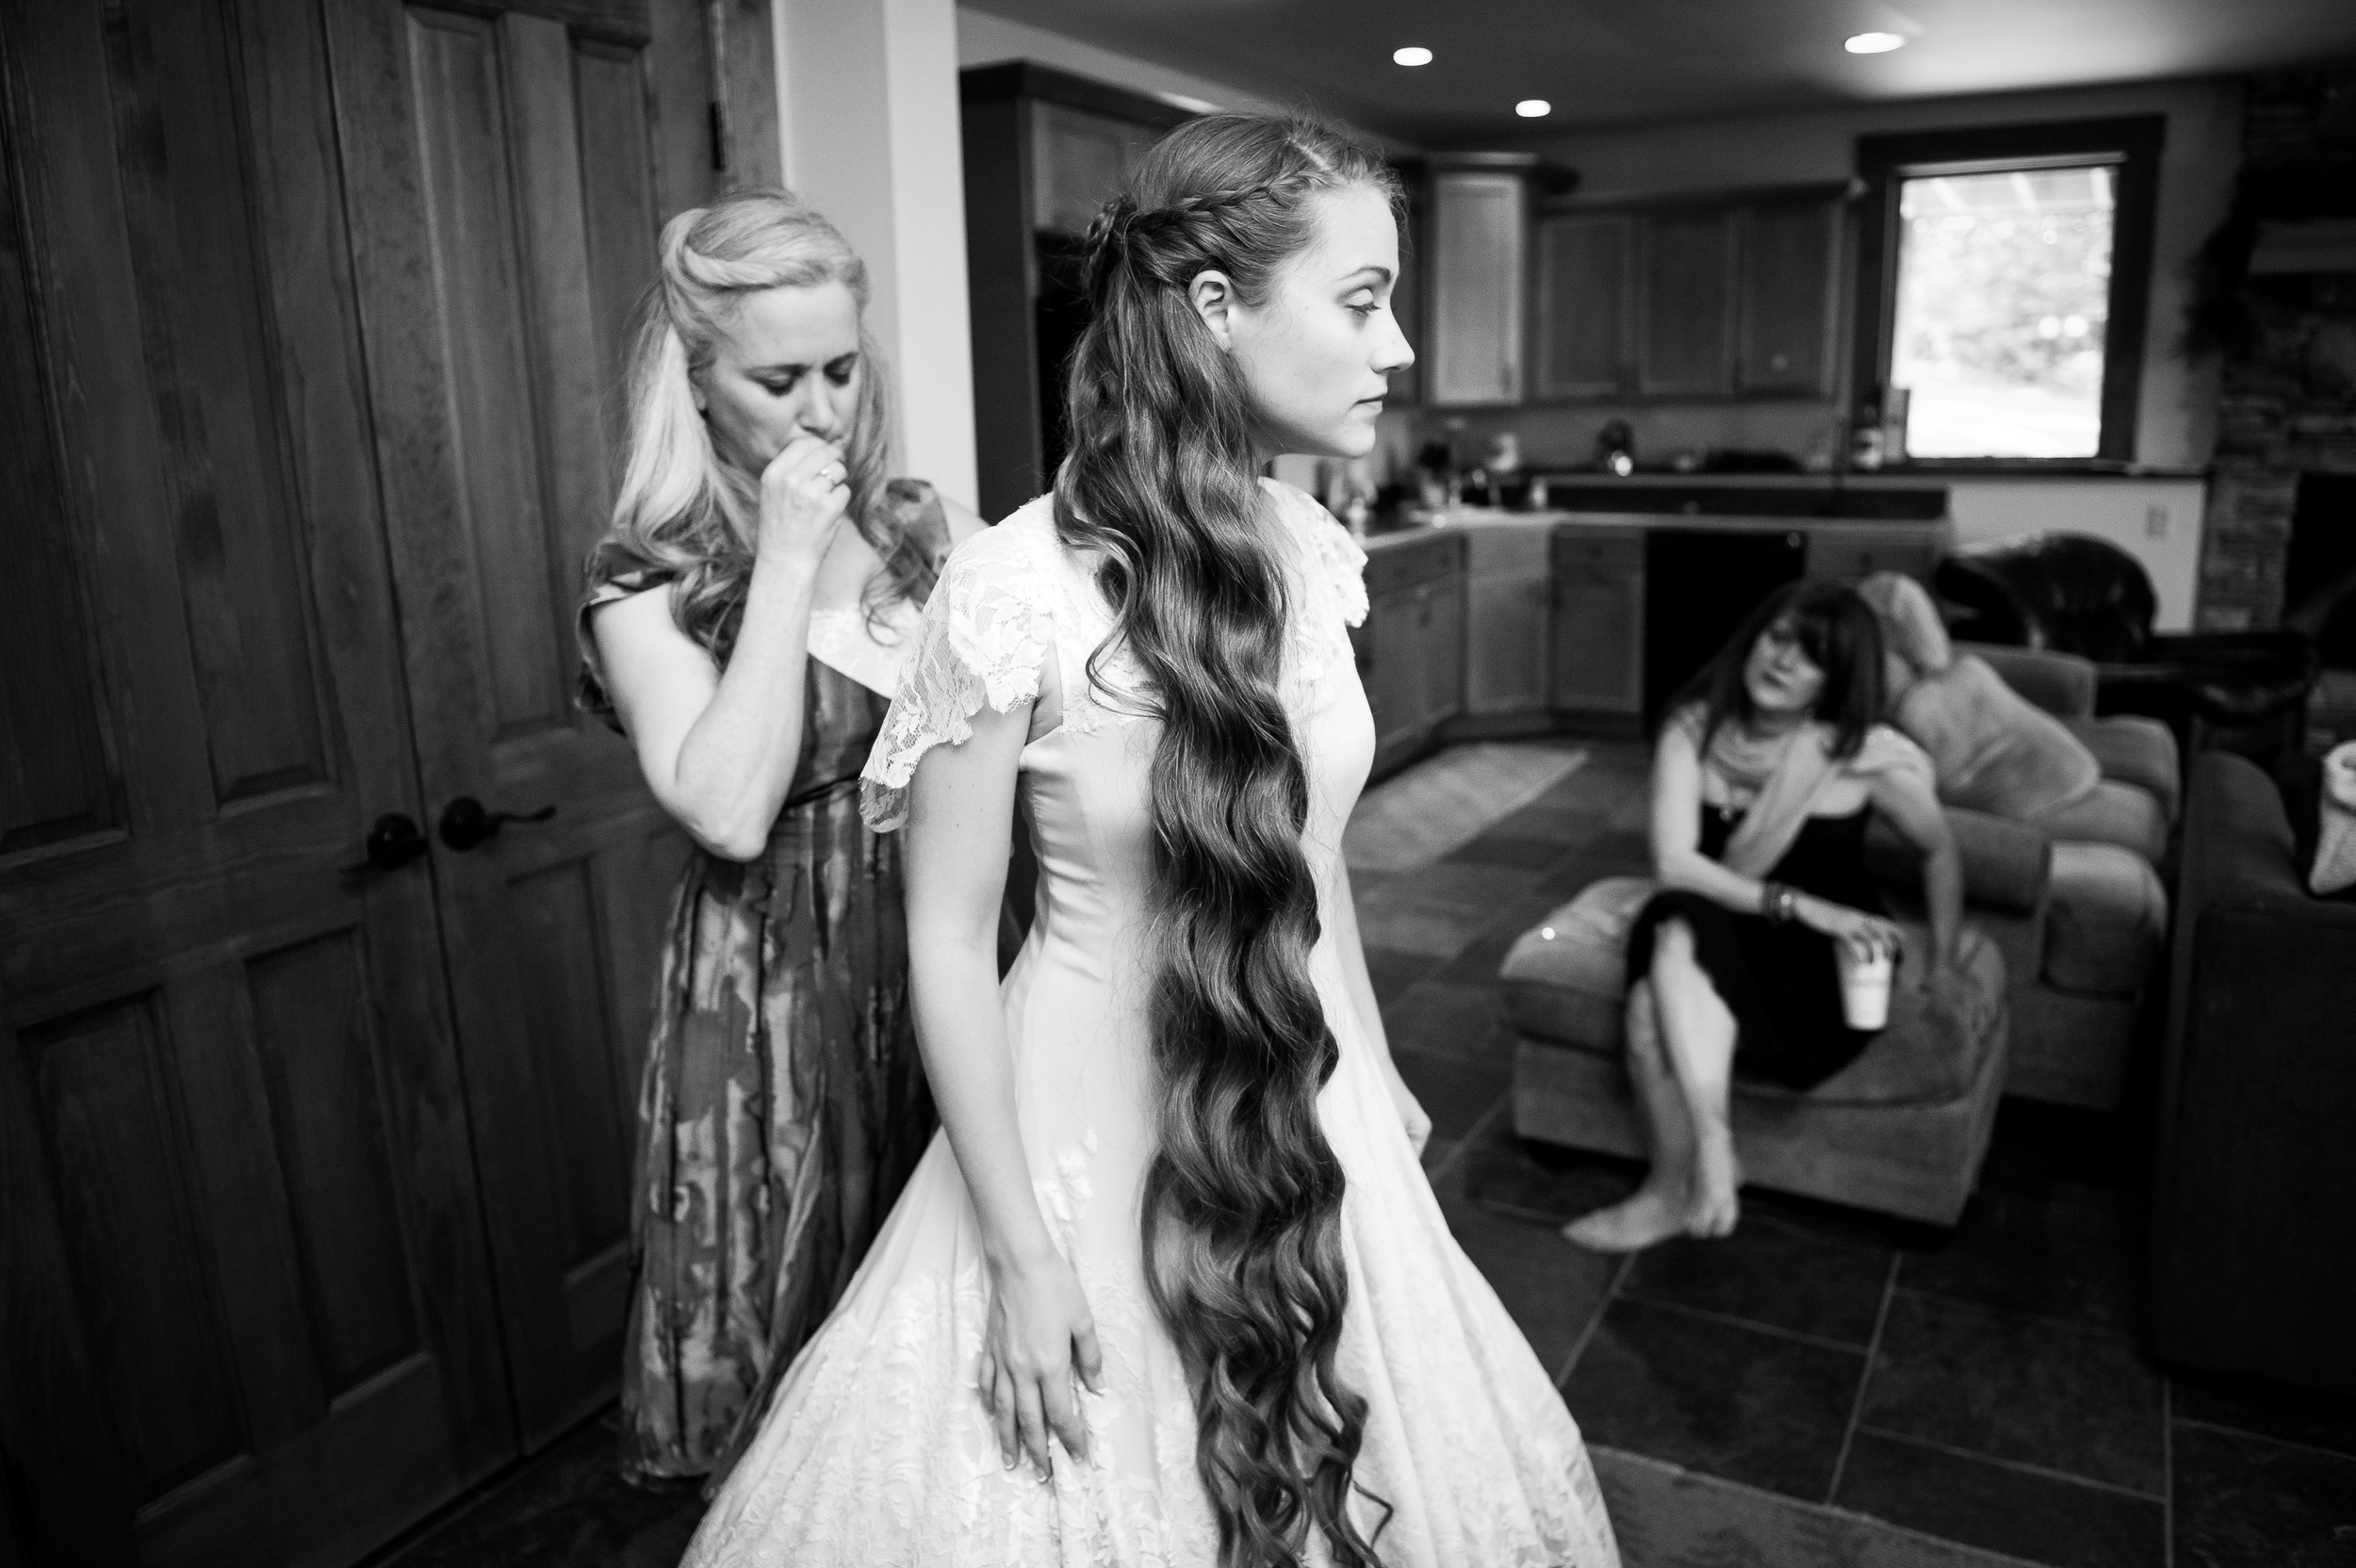 Quakerwedding-18.jpg